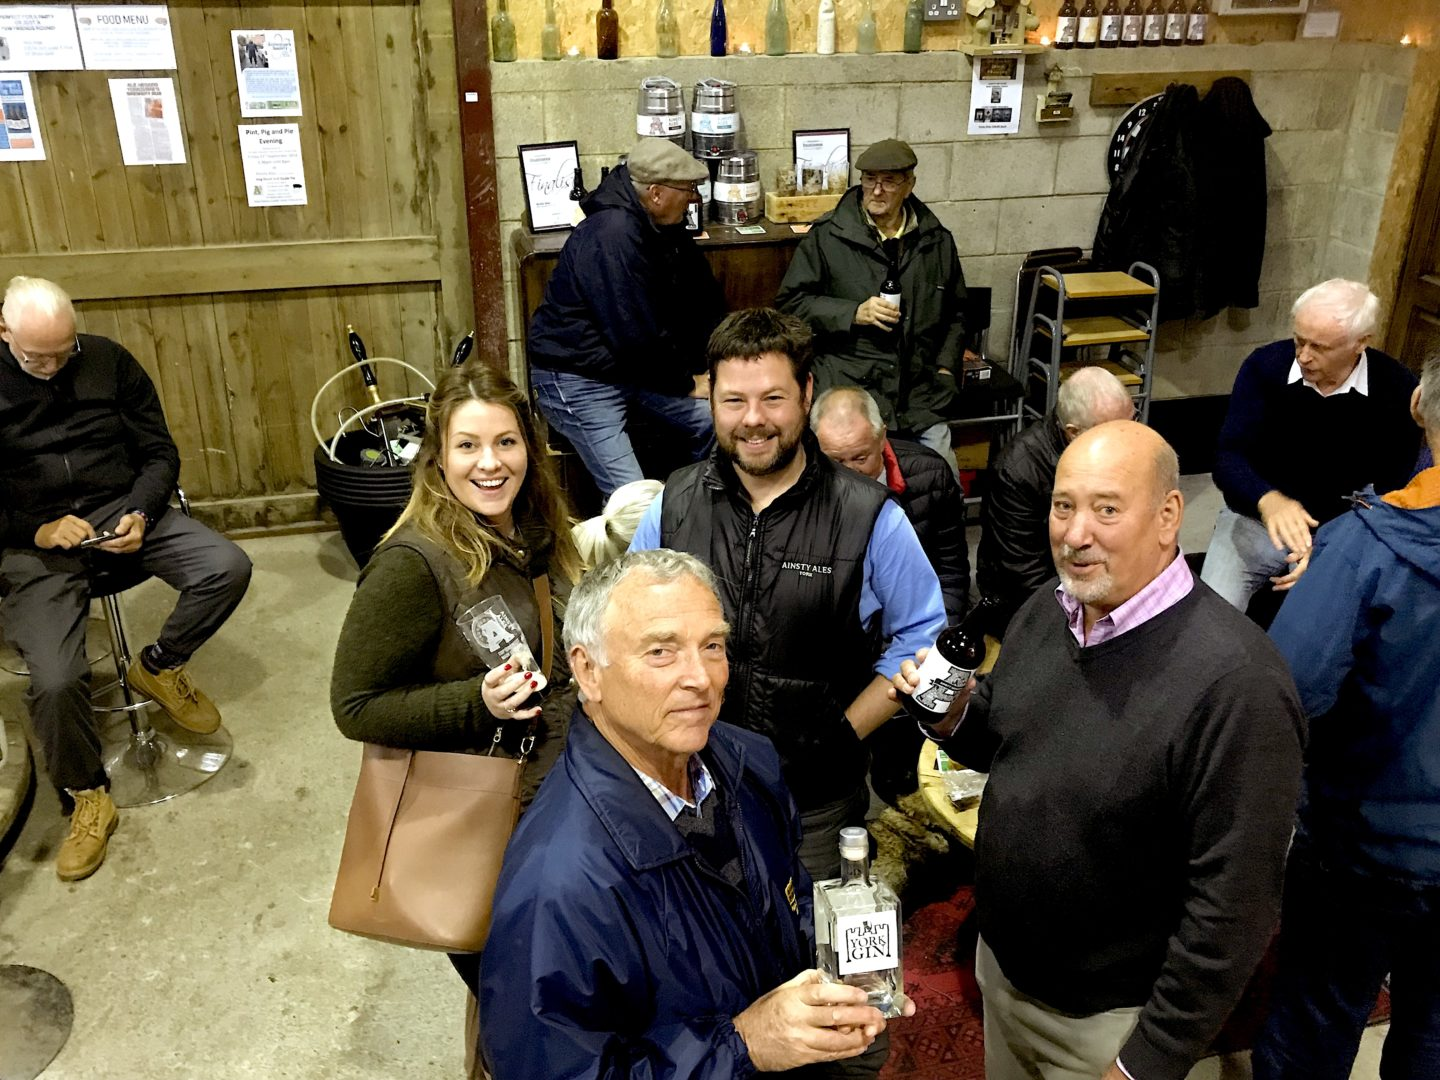 The Brewtown Beer tour